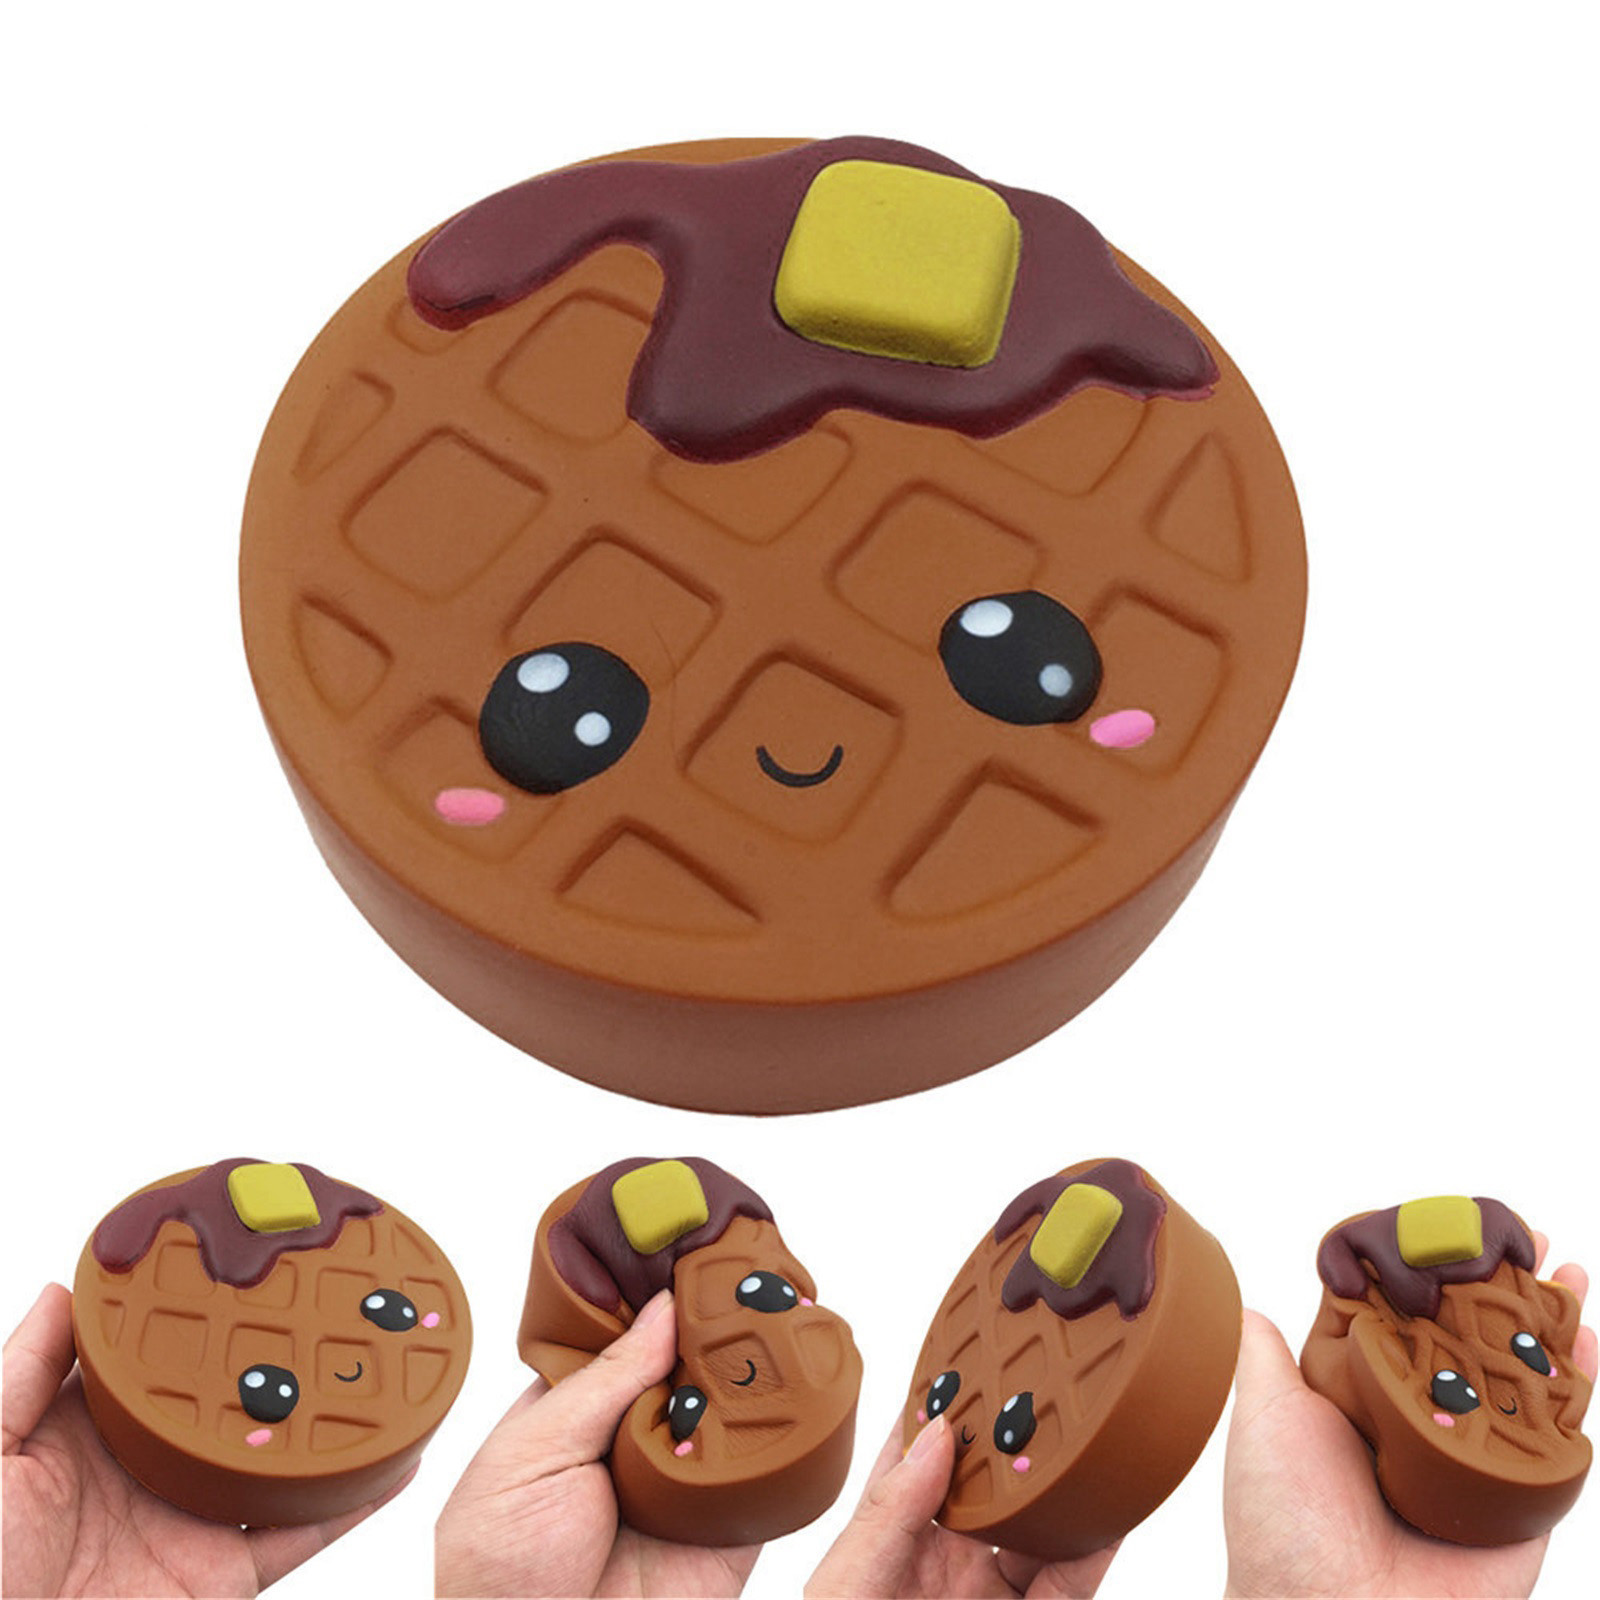 Gift Toy Fidget-Toys Biscuits Antistress-Gadget Chocolates Soft Squishy Cute Kawaii Decompression img1